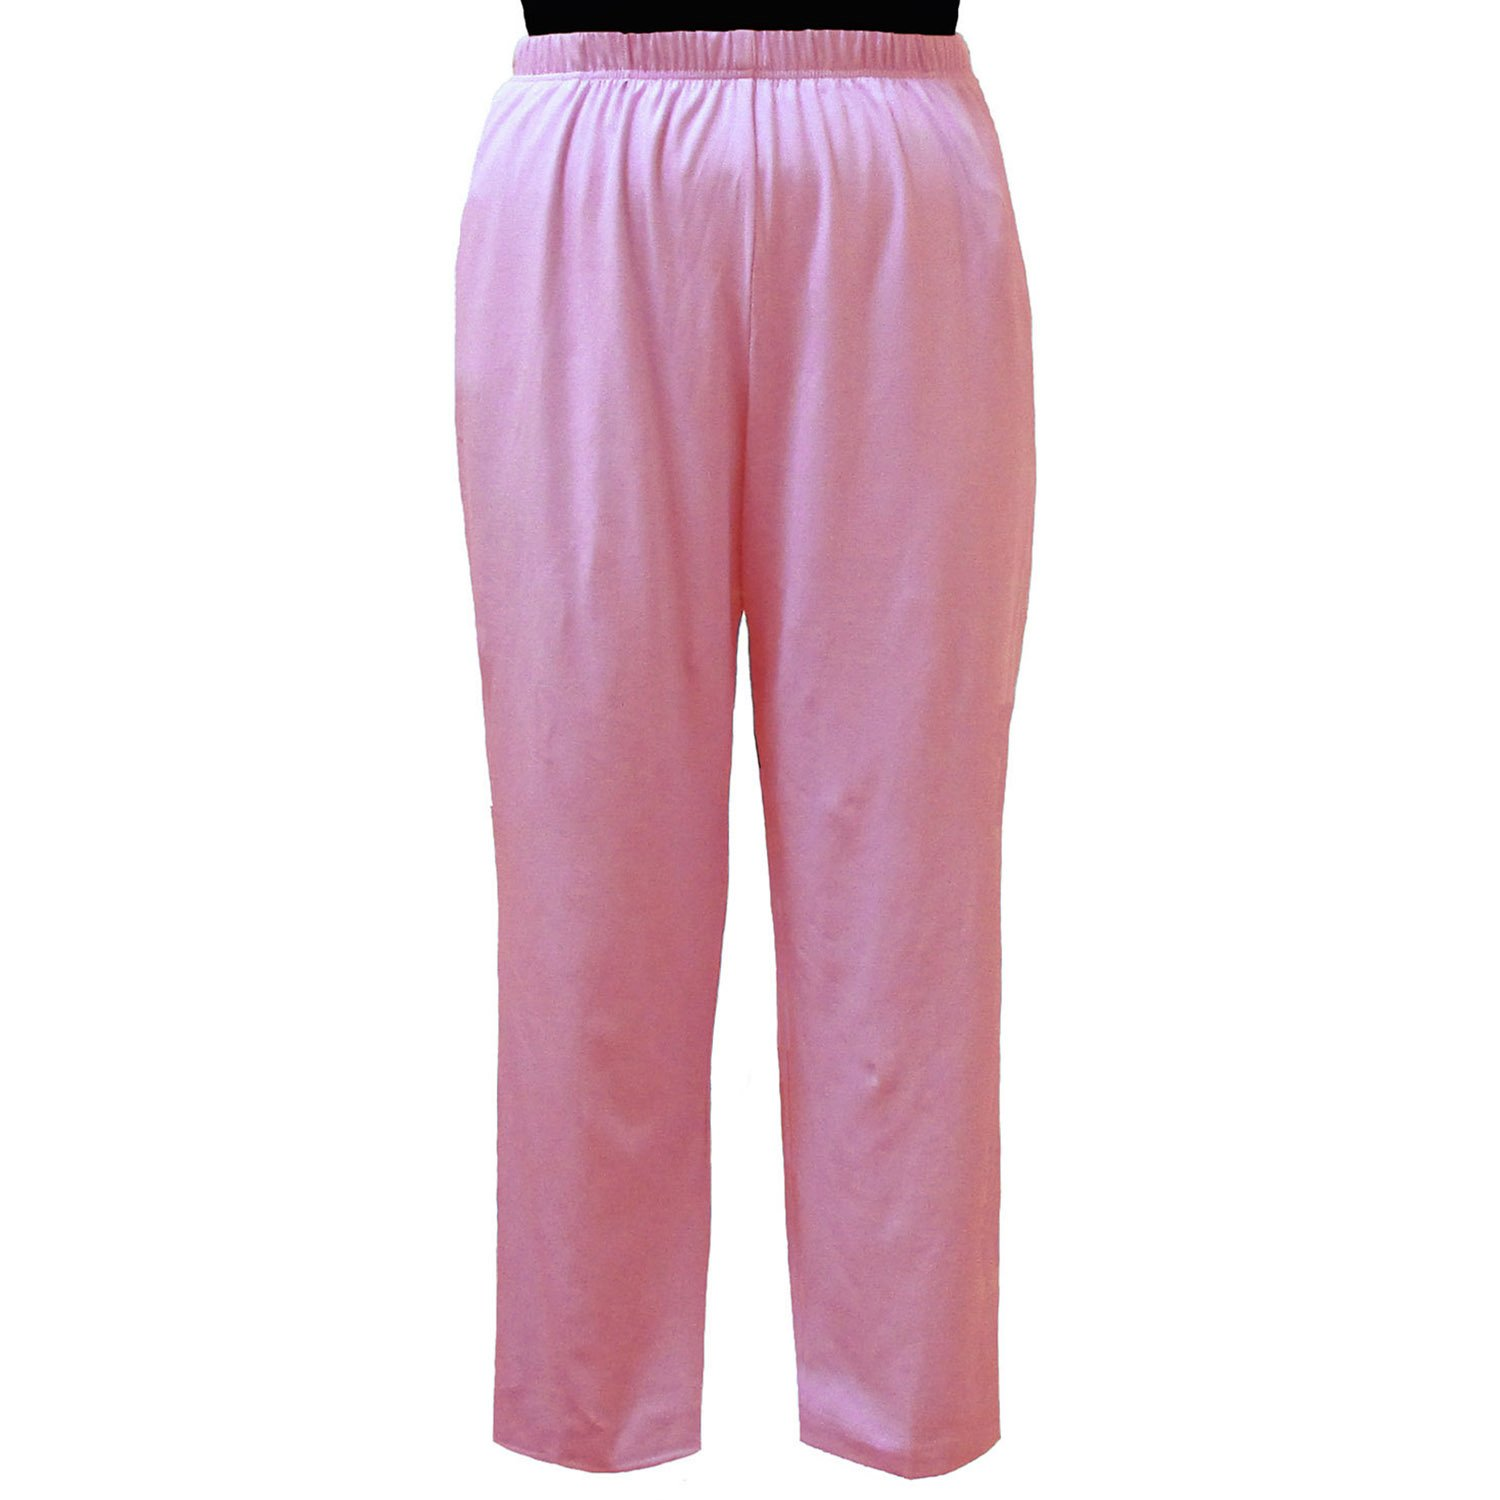 A Personal Touch Womens Plus Size Pink Cotton Knit Pull-On Pant